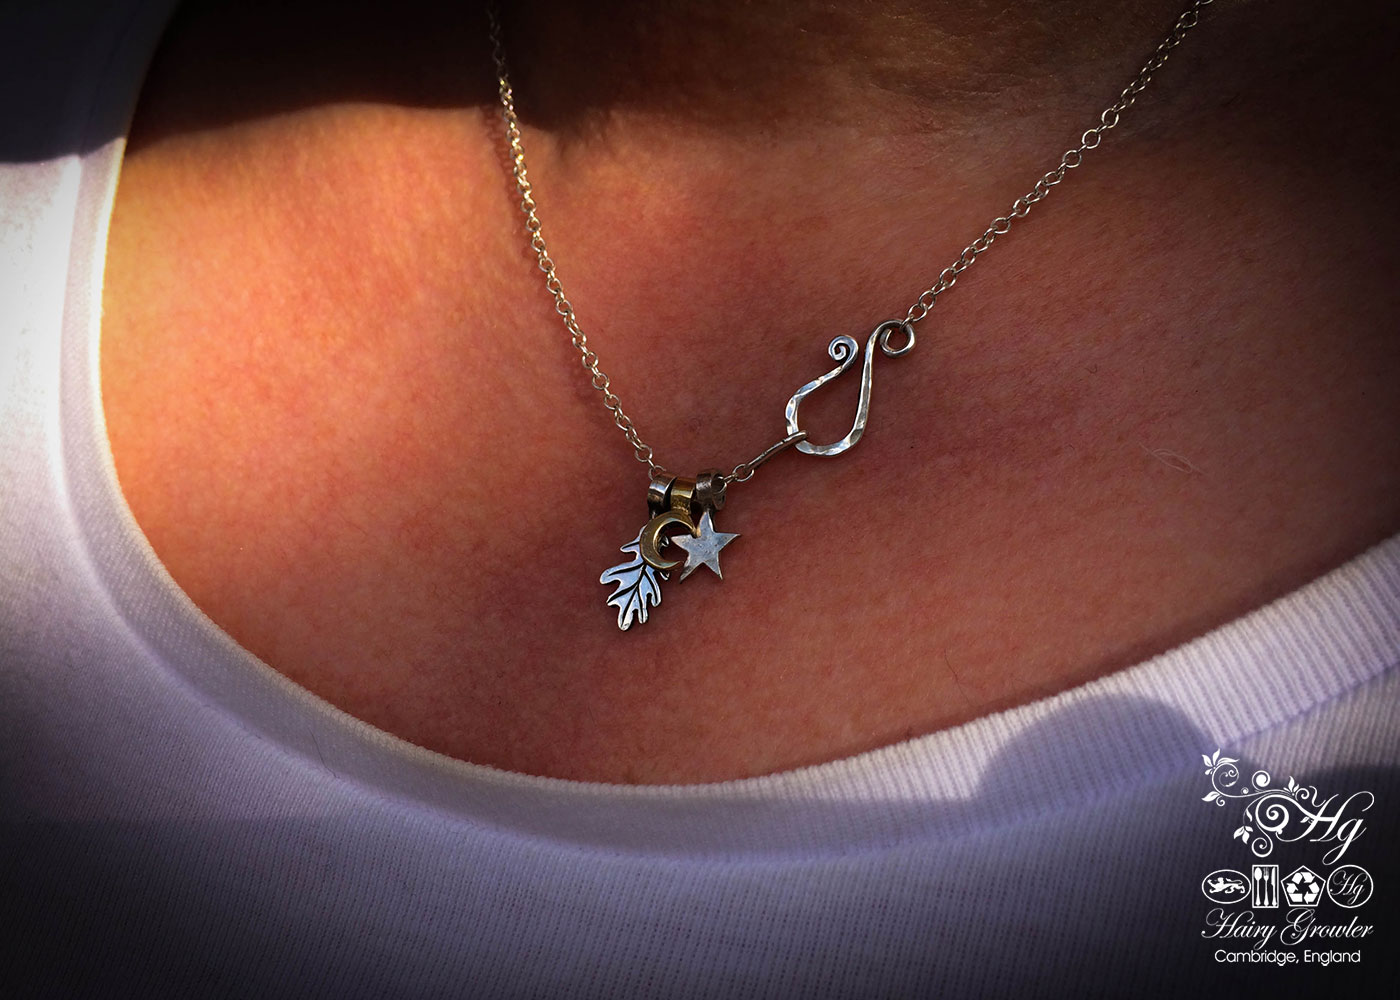 handmade recycled upcycled silver star and moon charm for a tree sculpture, necklace or bracelet